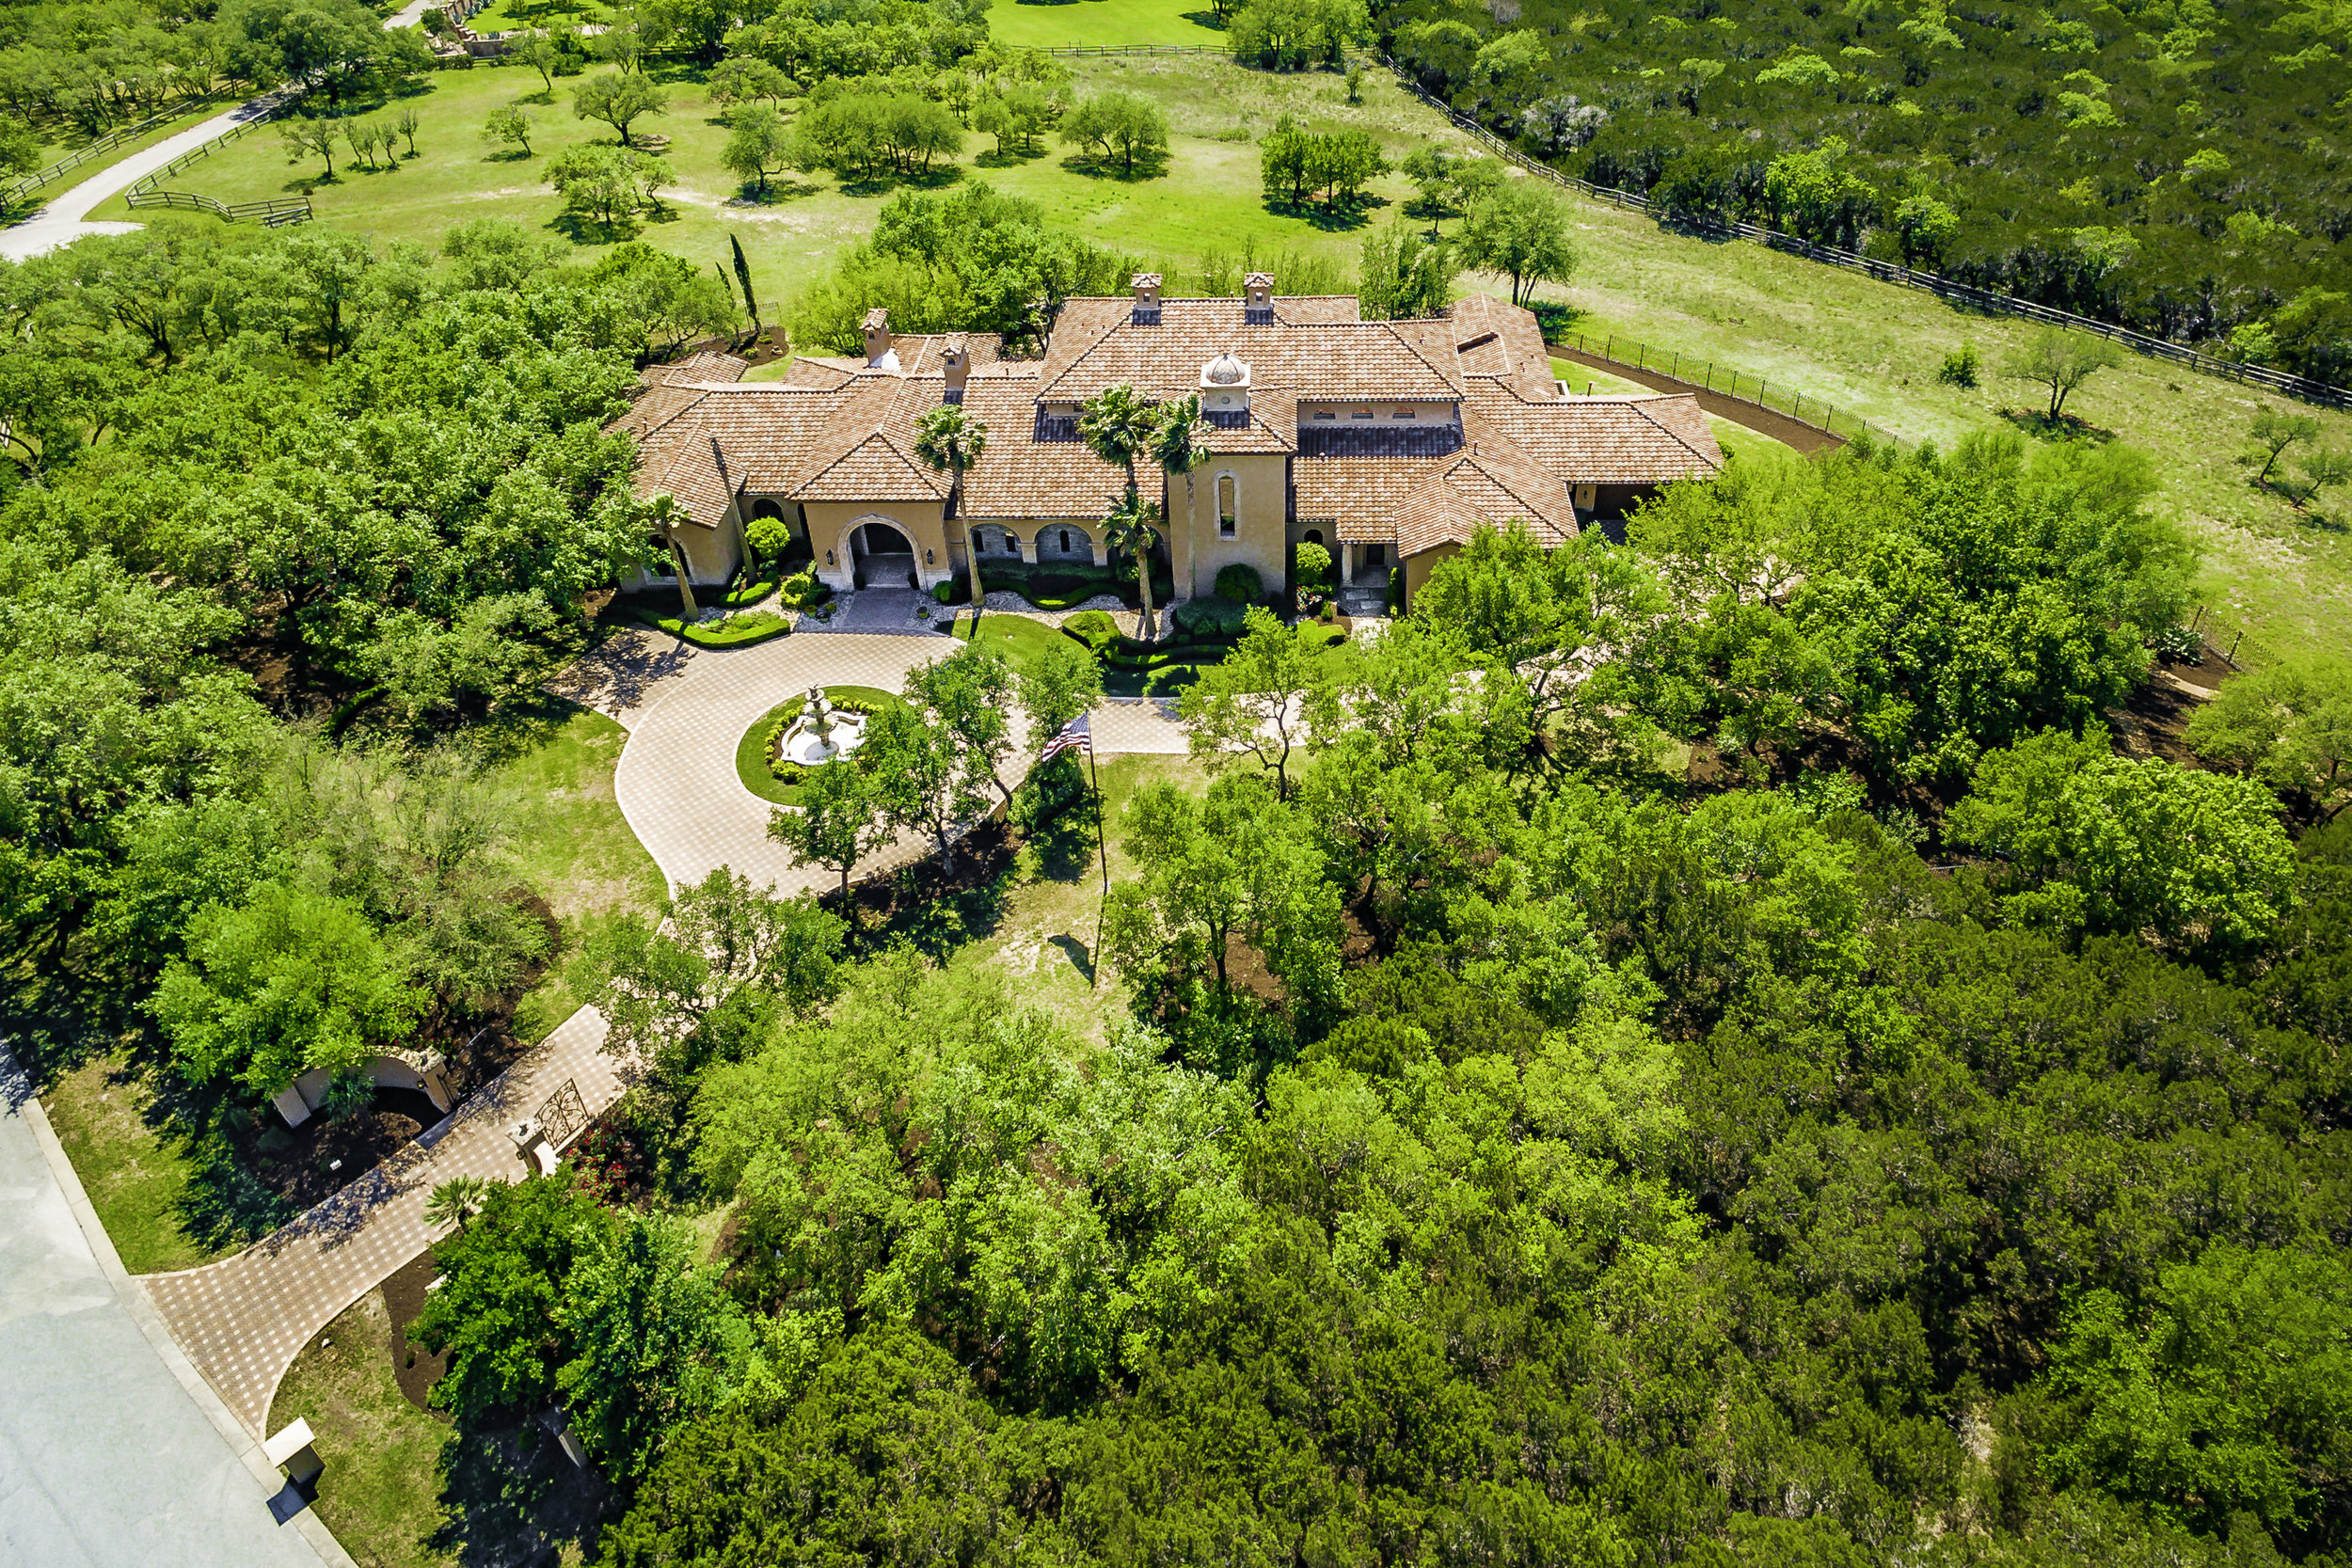 2502 Dominion Hill Aerial - Valerie DiFabio - April 2019-1.jpg